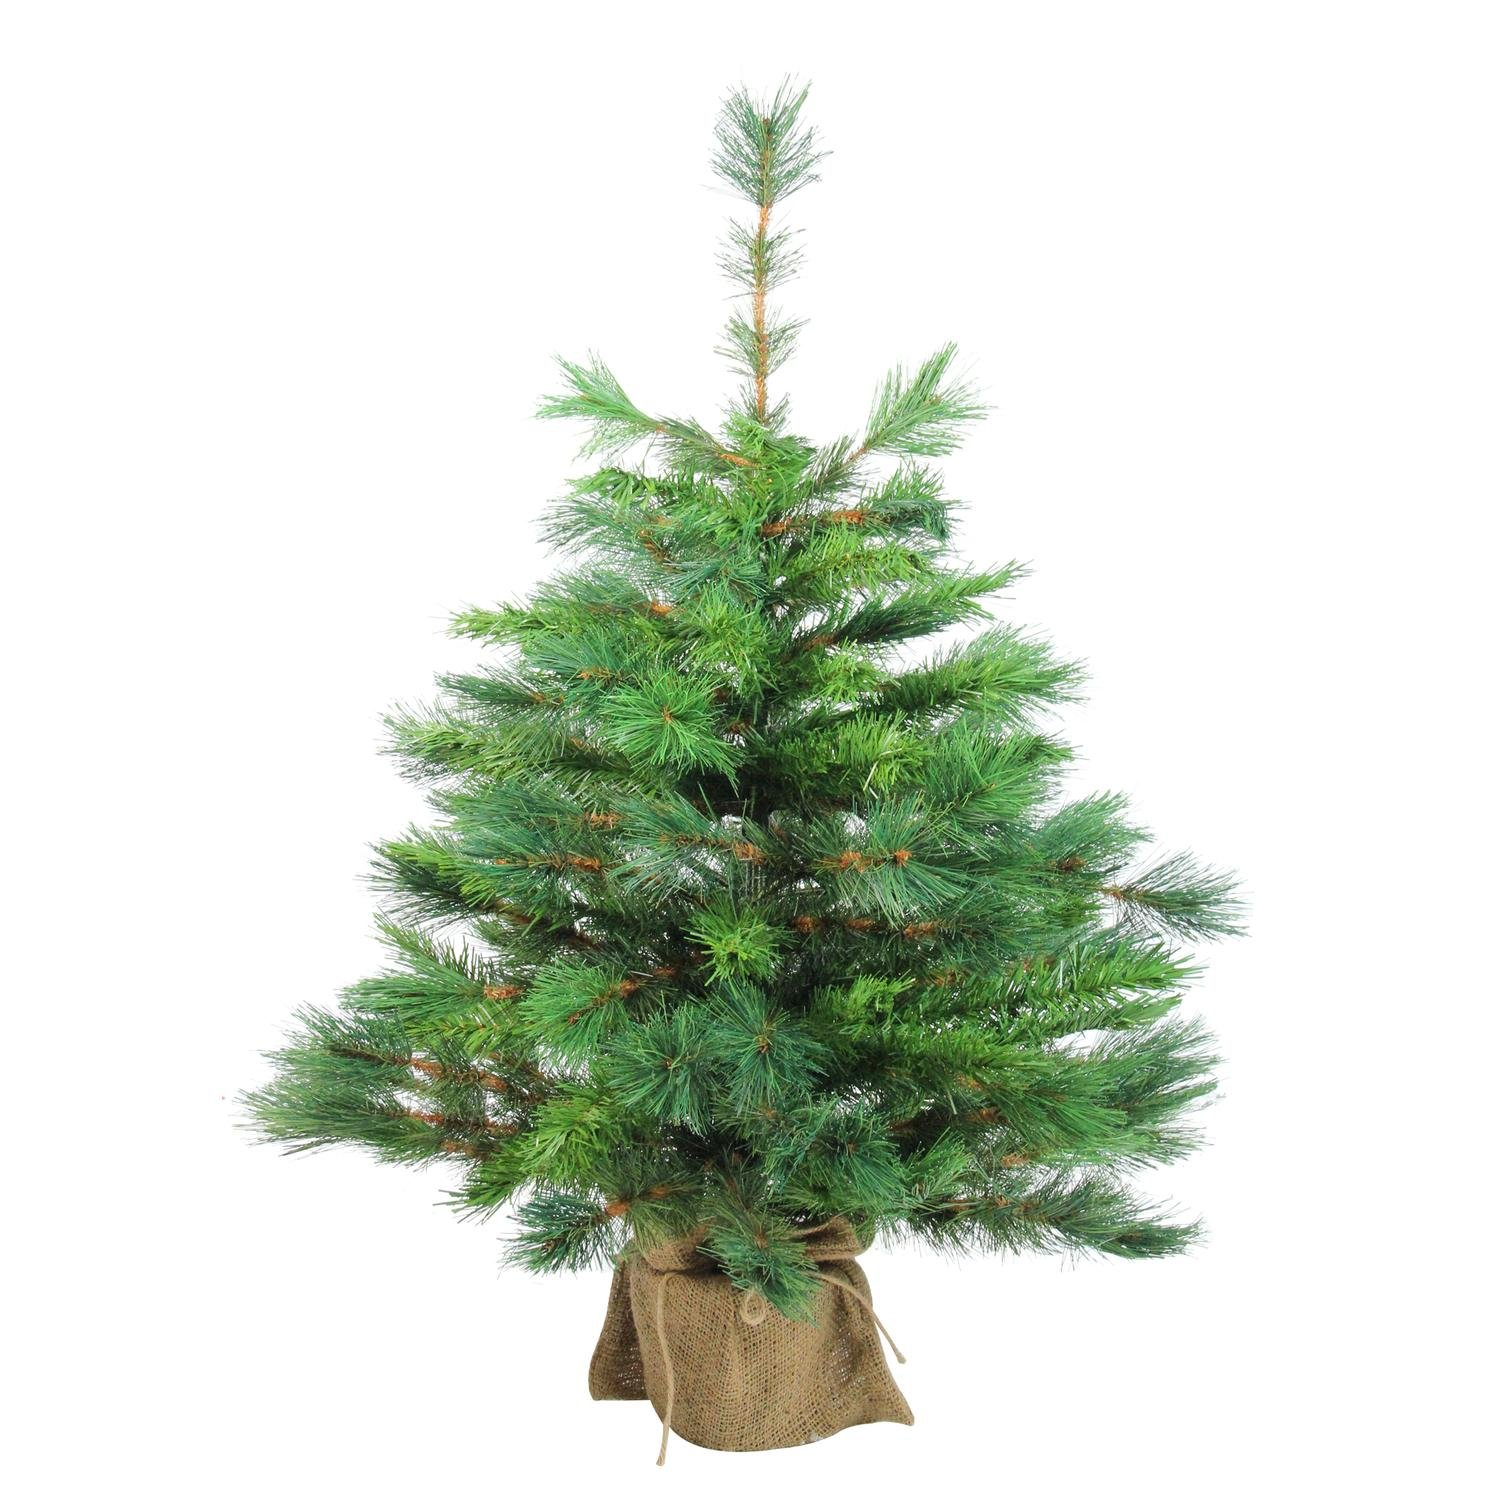 Northlight V04024 Artificial Christmas Tree in Burlap Base, 36''